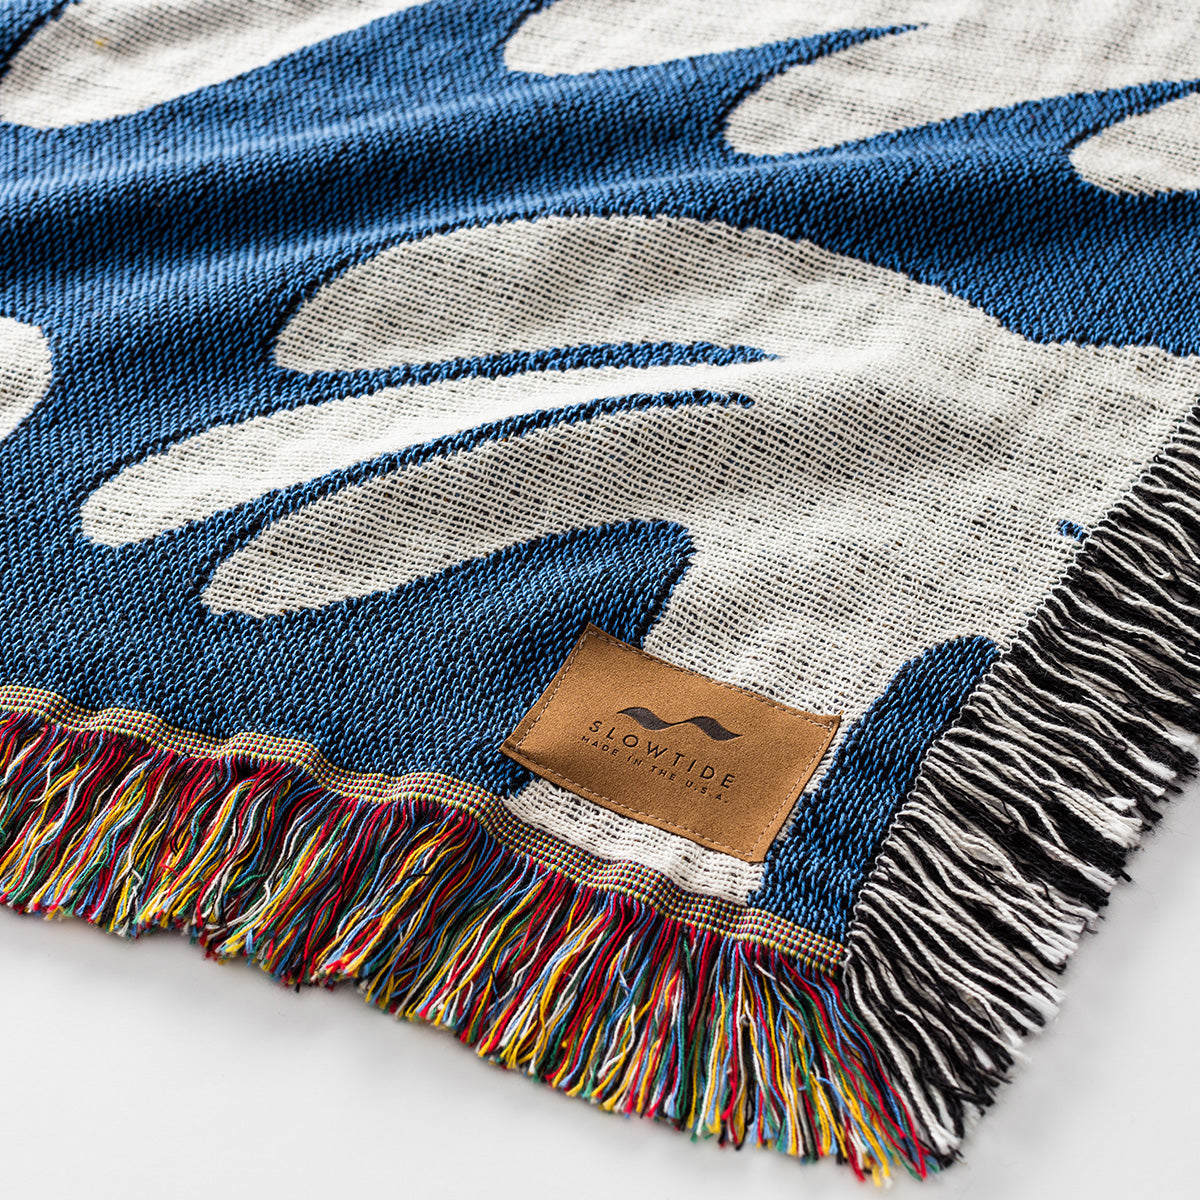 Kingston Blanket - Slowtide